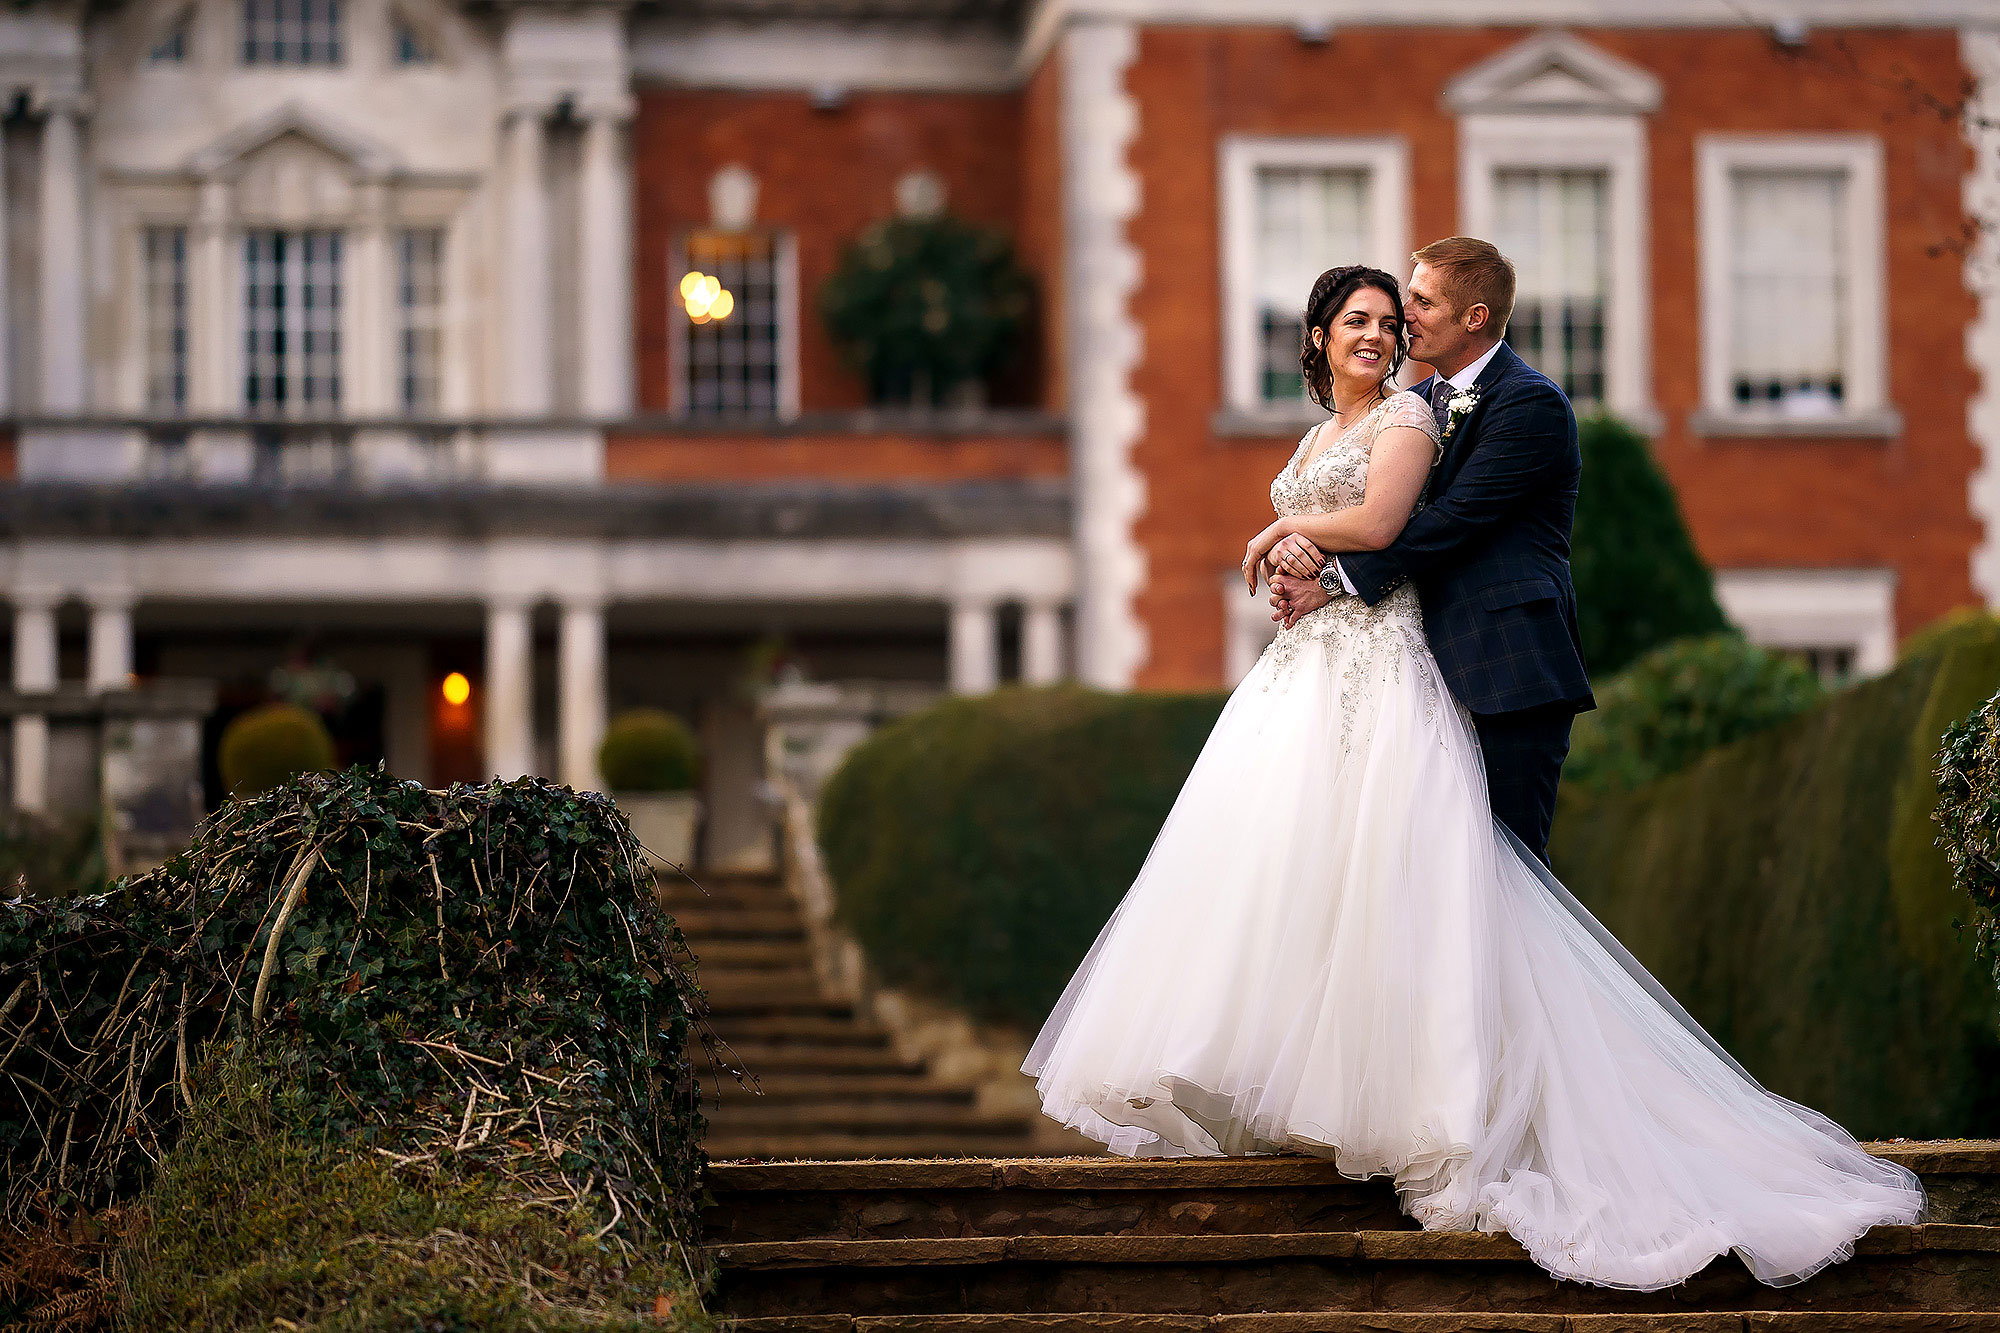 Bride and groom stood hugging on the steps in the gardens of Eaves Hall with the red brick building in the background | Eaves Hall wedding photography by Toni Darcy